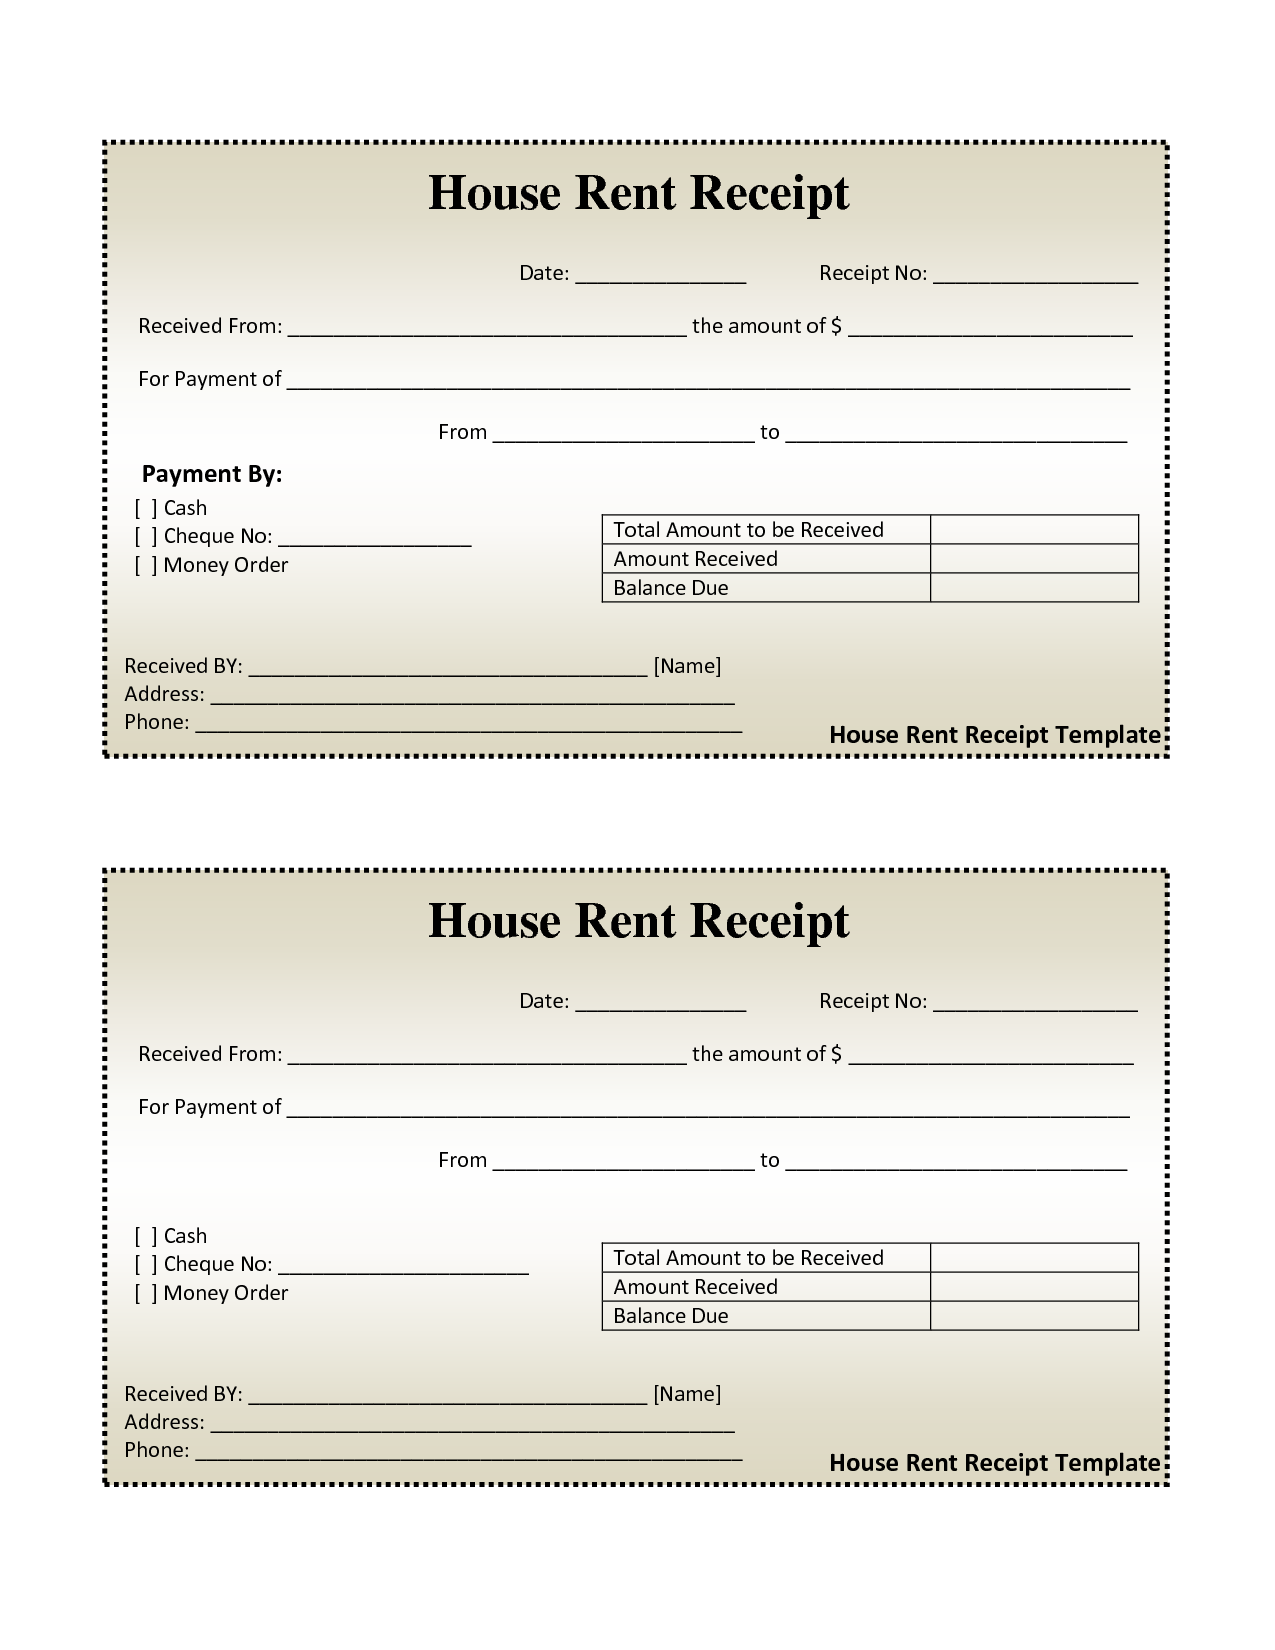 Charming Free House Rental Invoice | House Rent Receipt Template   DOC On Download Rent Receipt Format